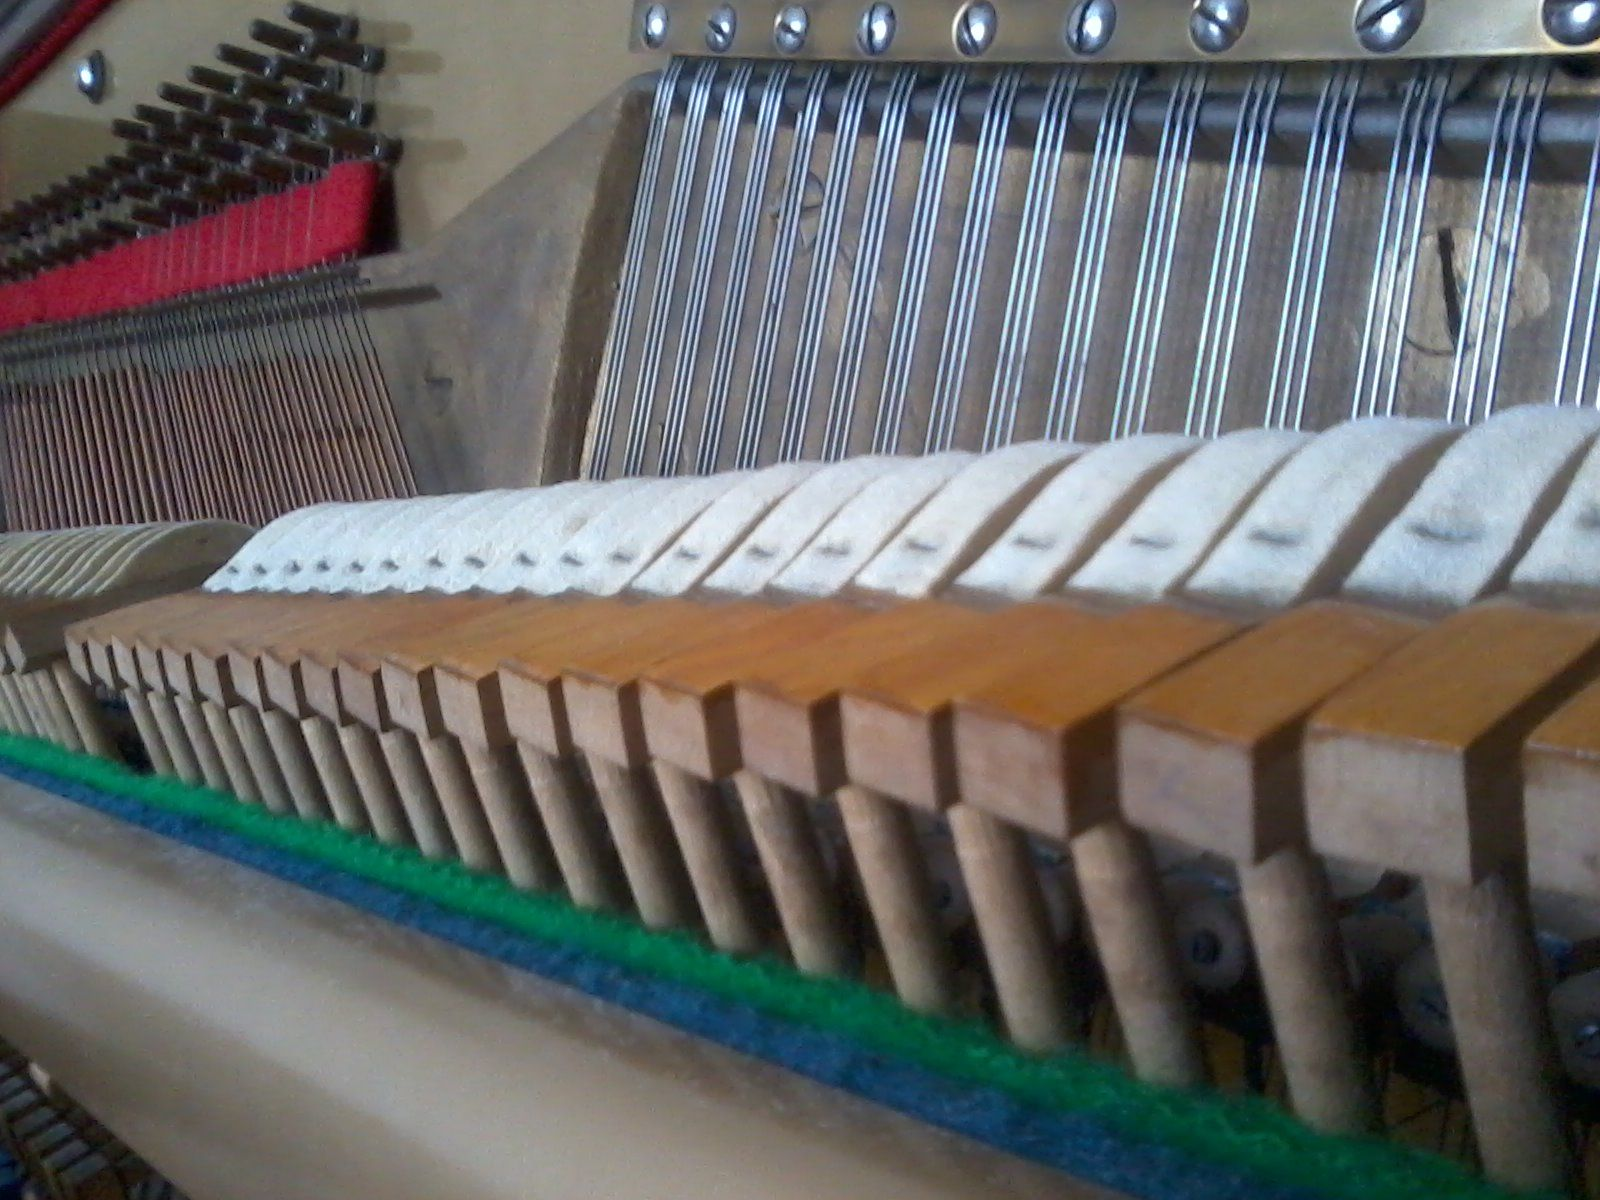 Piano Action and Hammers